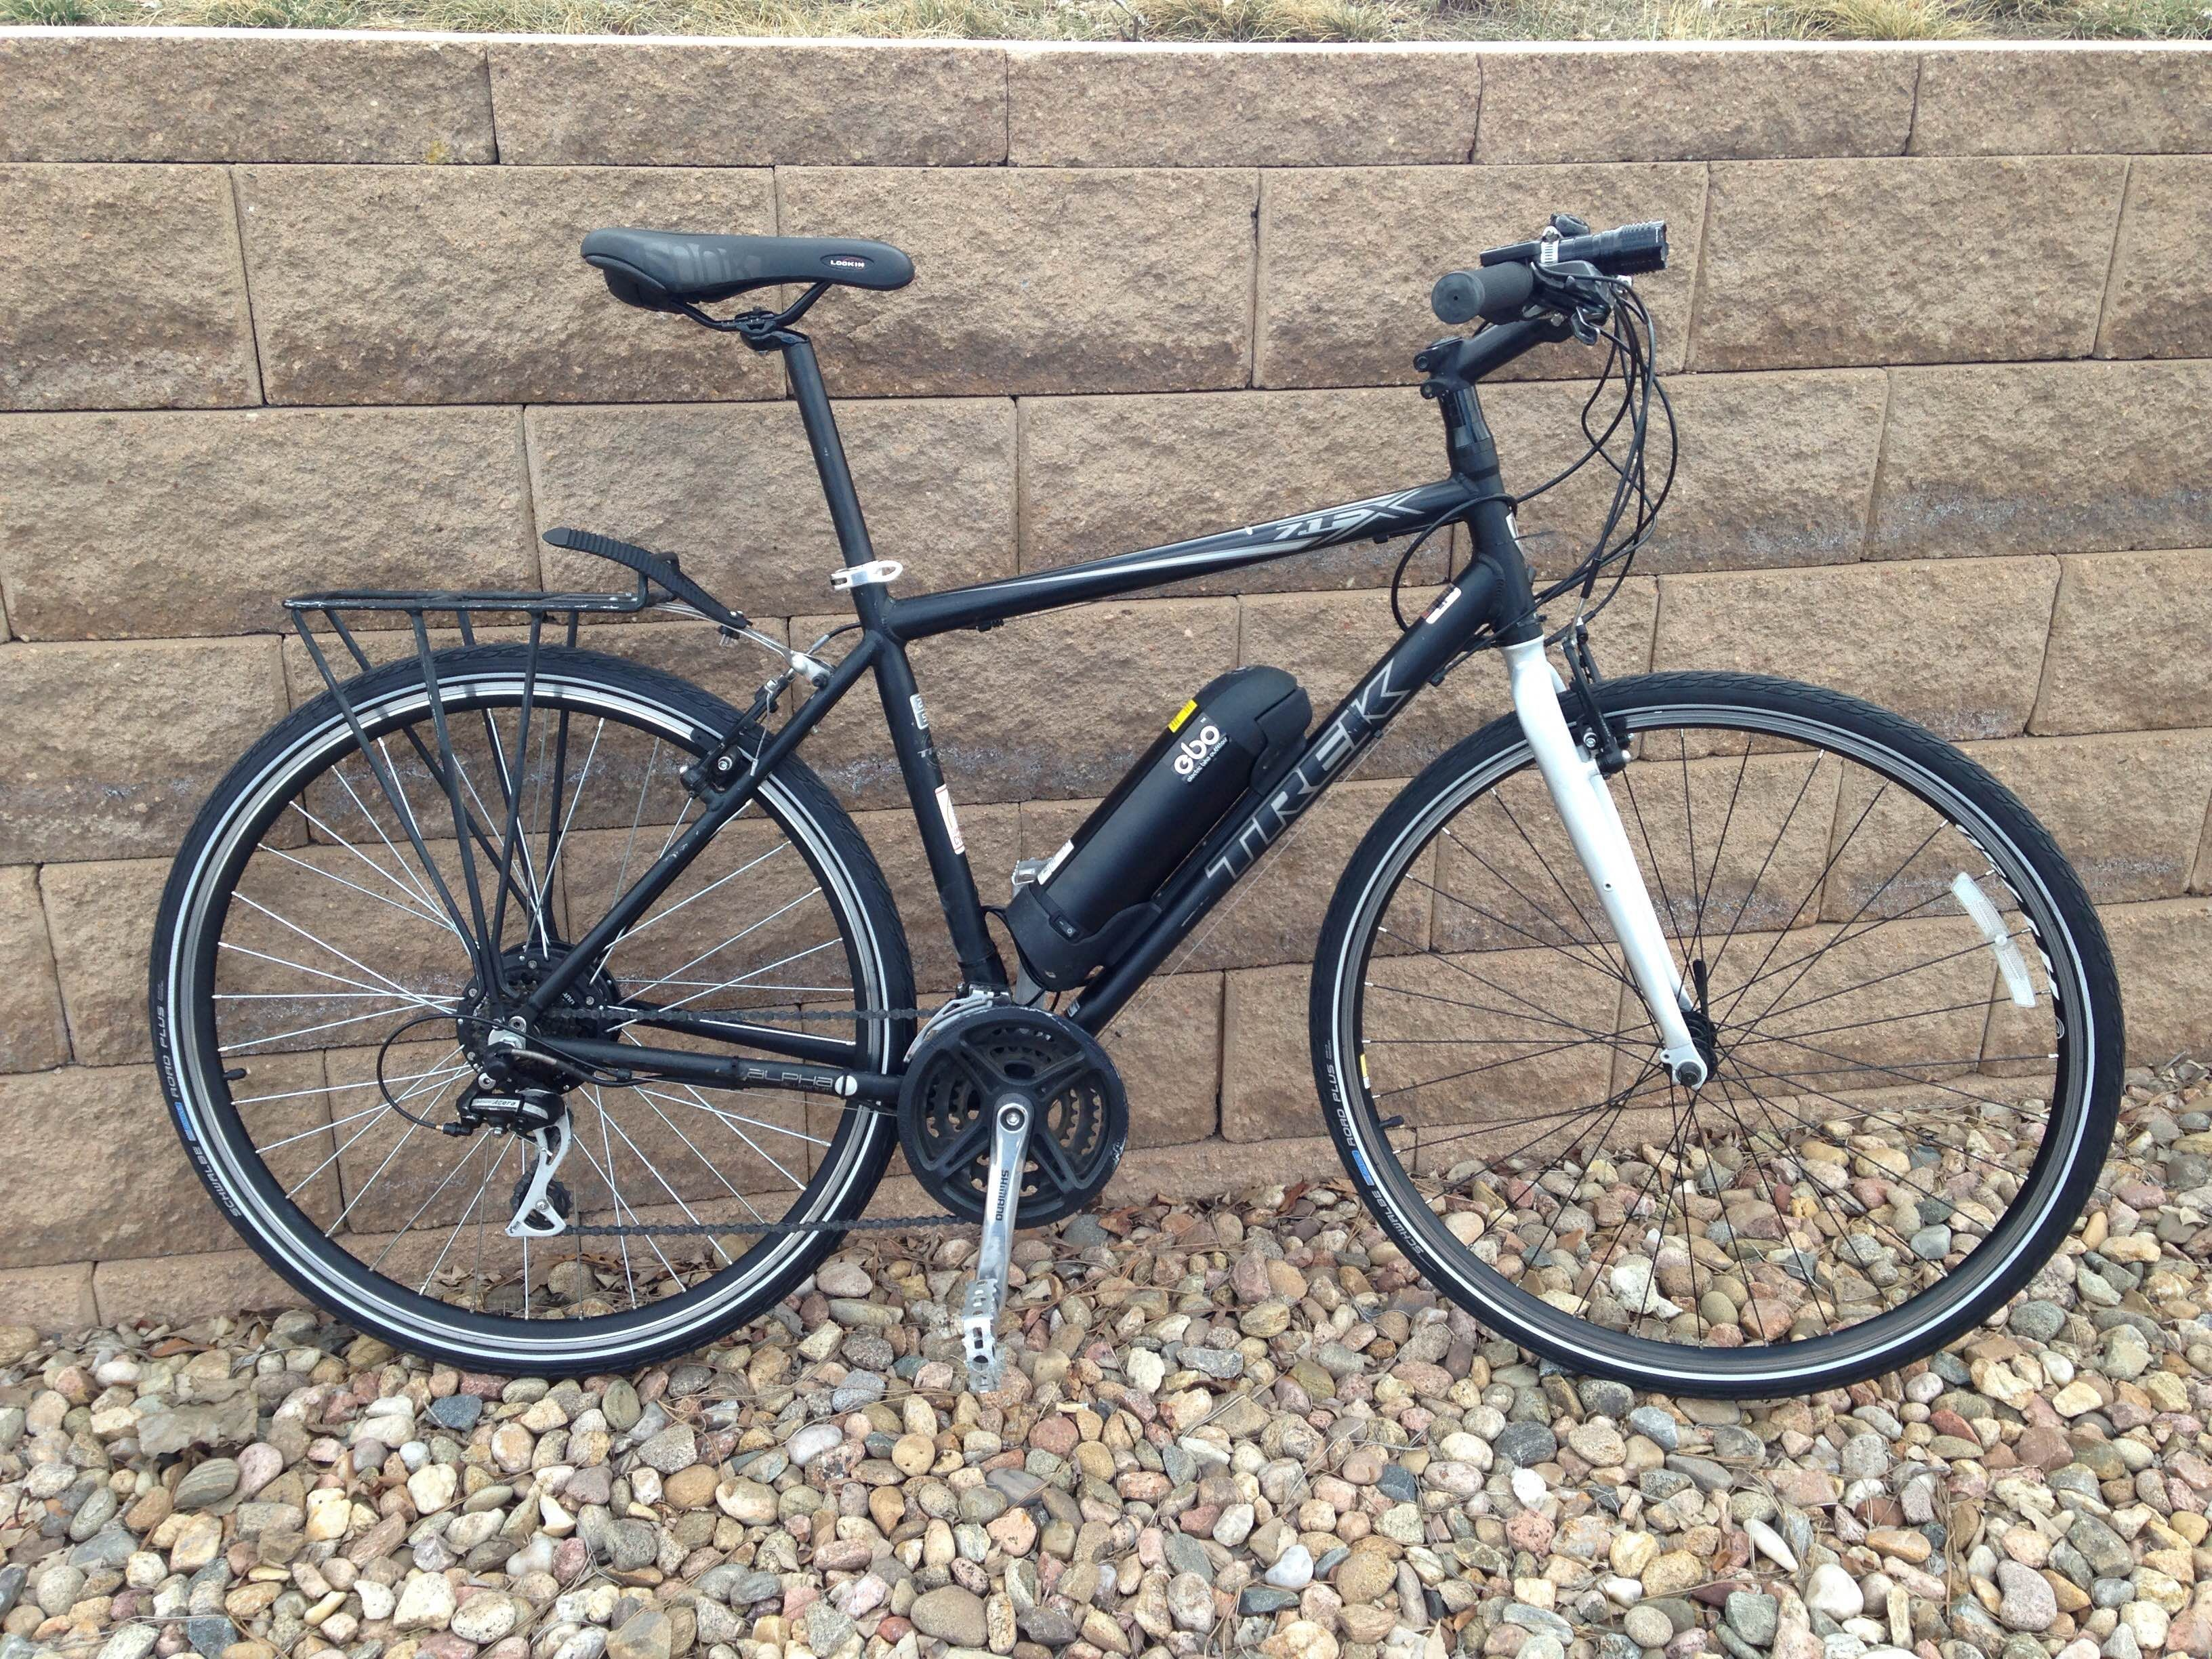 Ebo Phantom Electric Bike Conversion Kit Installed On A Trek 7 1